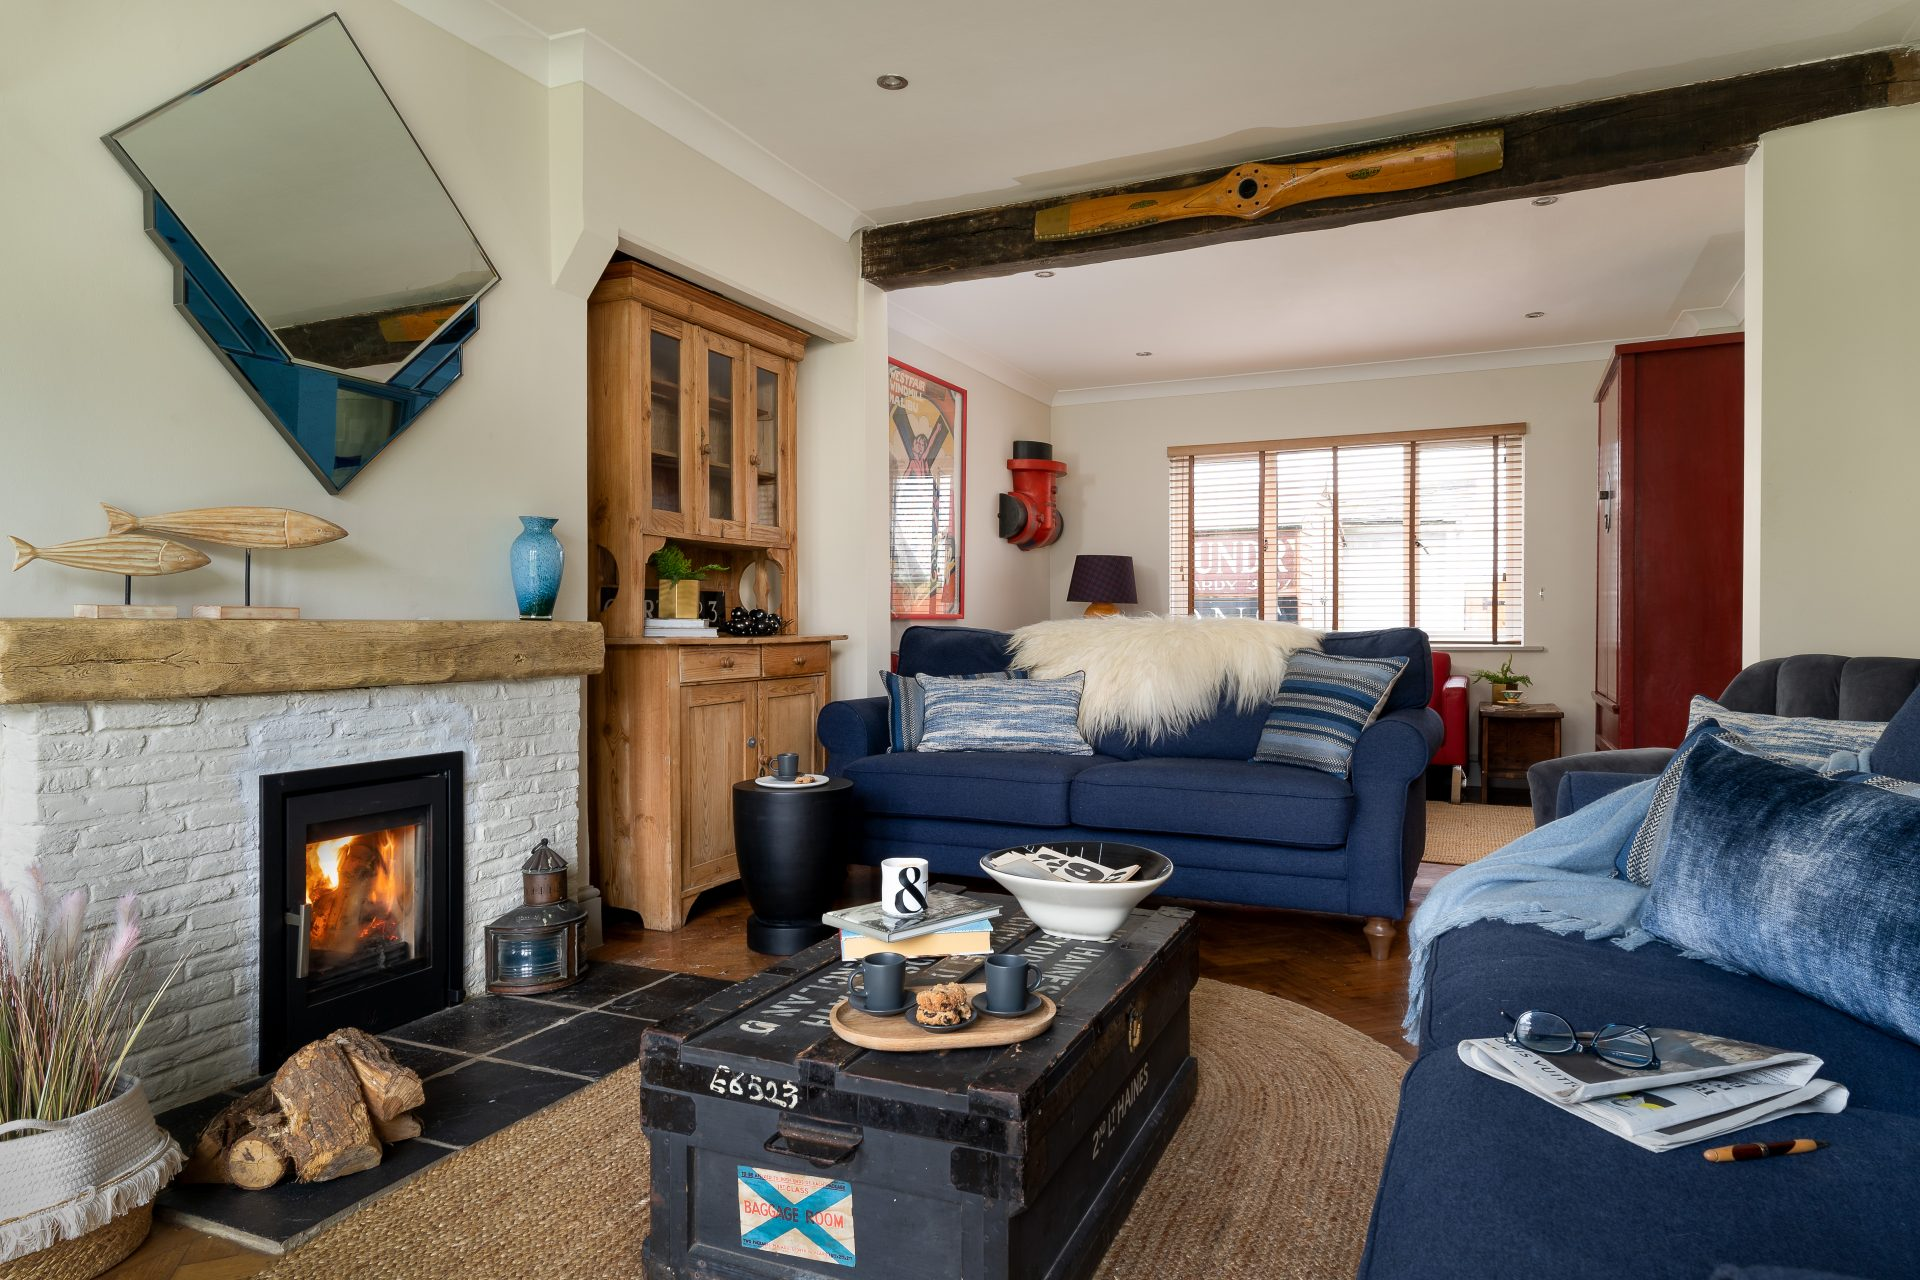 Quay House in Topsham - Interior Decoration & Photography